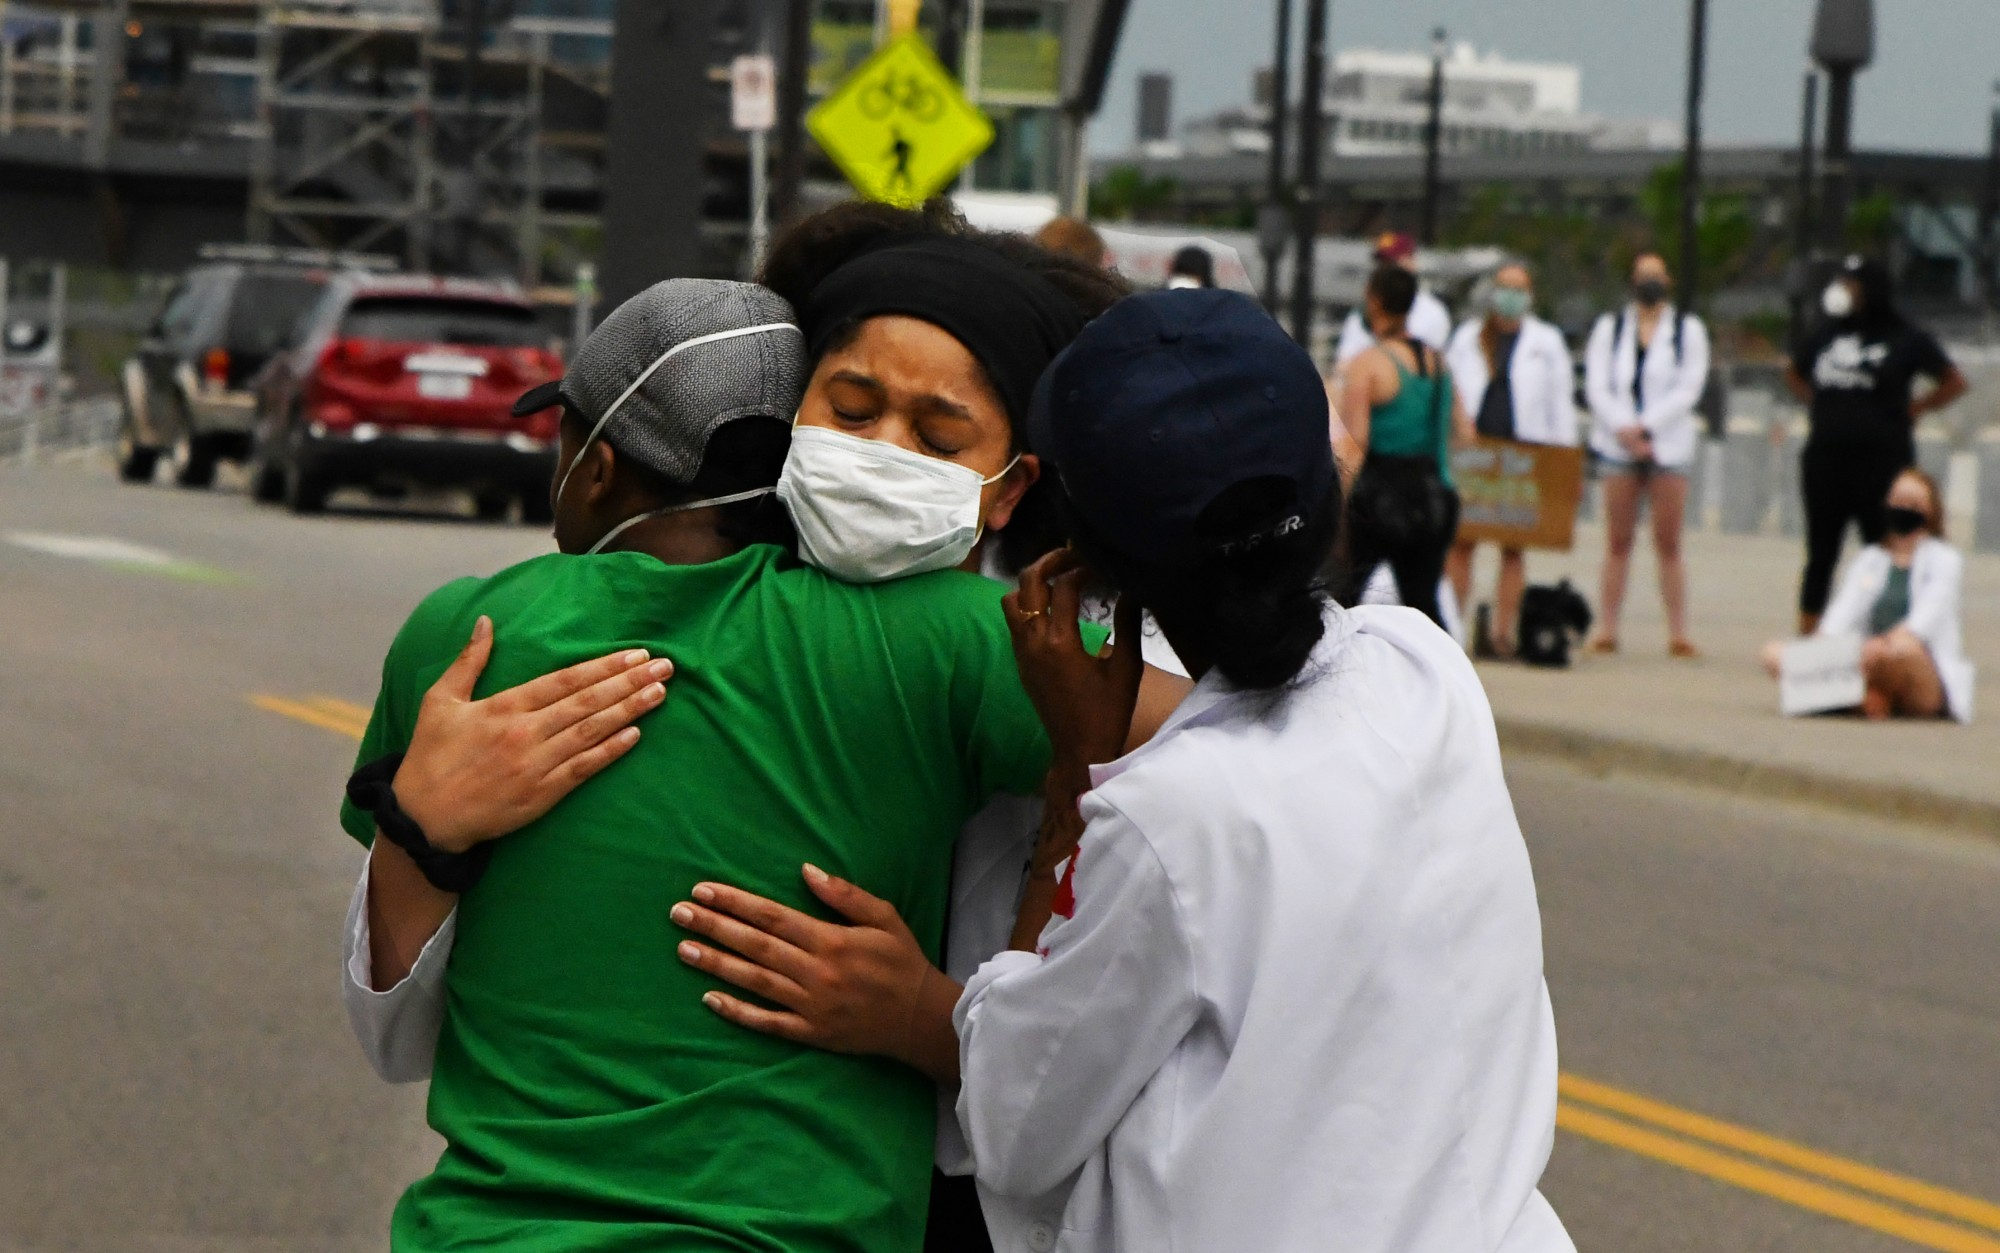 Dominique Earland hugs fellow University of Minnesota medical students after addressing the crowd of medical students and professionals outside of the Hennepin County Medical Examiner's office on Tuesday, June 2.